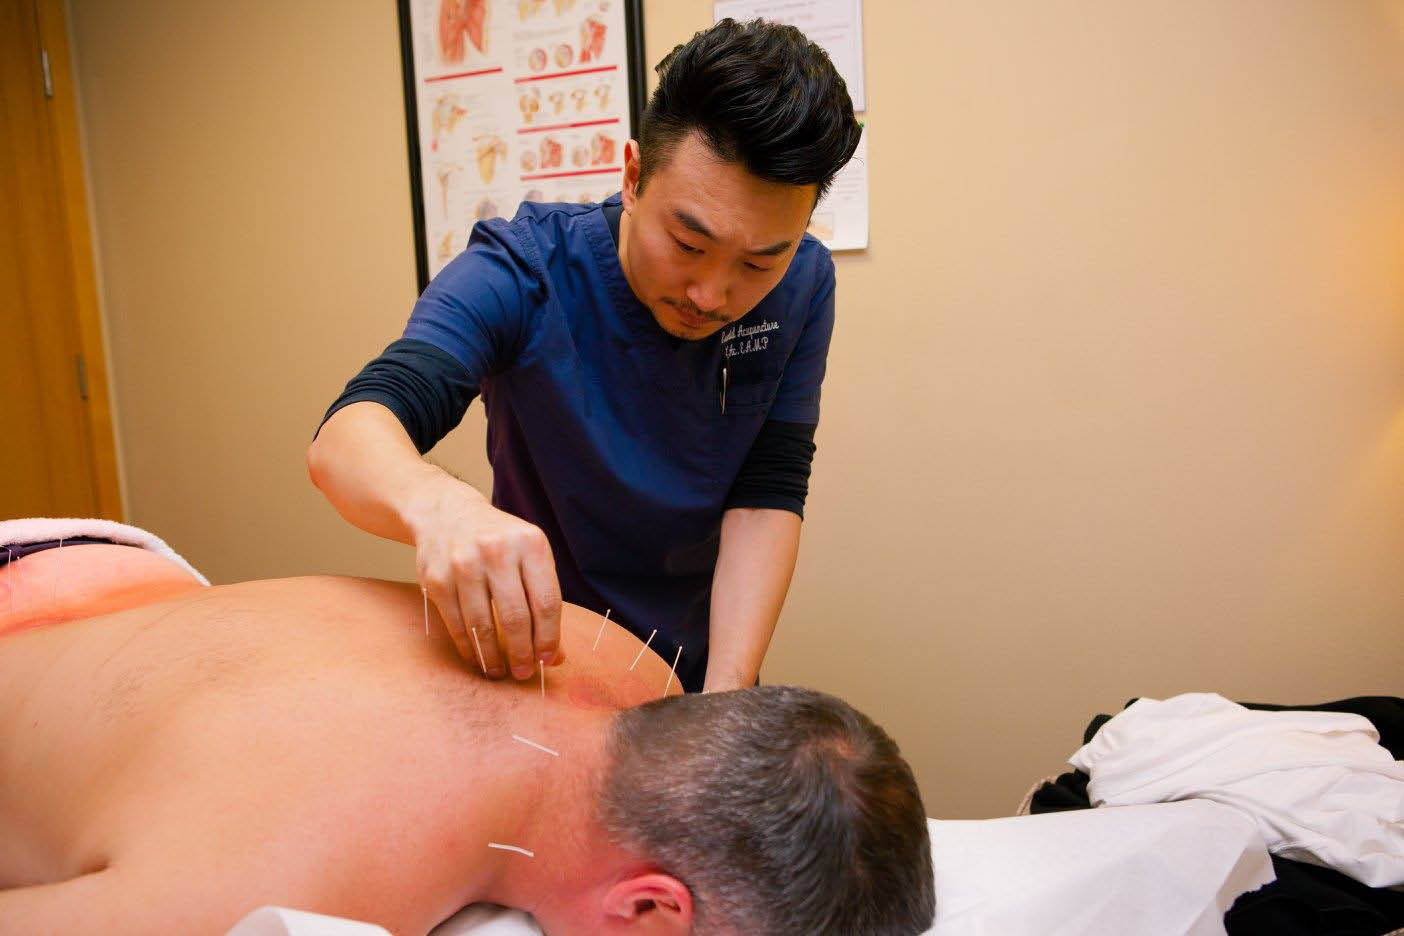 Arlington Seattle Acupuncture Massage Herb Cupping Wellness, Women's Health, Fertility, Fatigue, Low Energy, Anxiety, Depression, Weight Loss, Joint and Muscle Pain, Sports Auto Accident injury, stress relief, digestive disorder